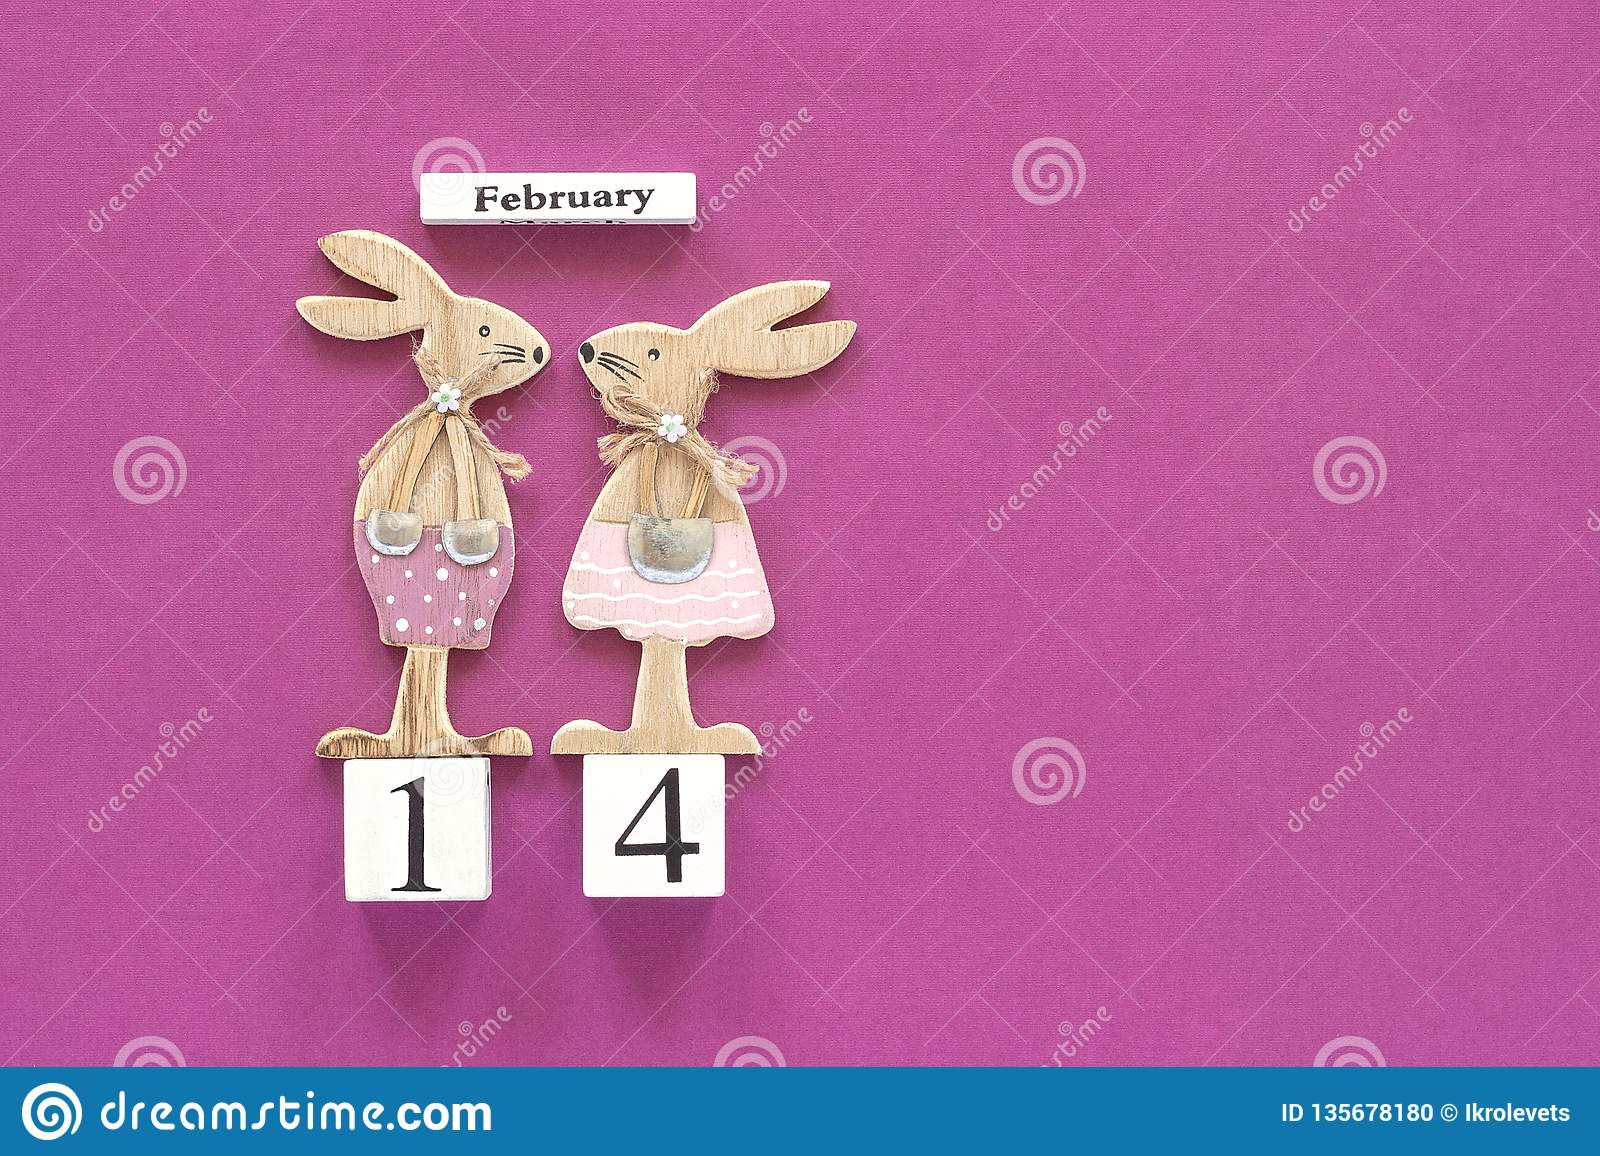 Romantic composition Wooden cubes calendar February 14th and pair of wooden lovers figurine rabbits on purple background. Concept